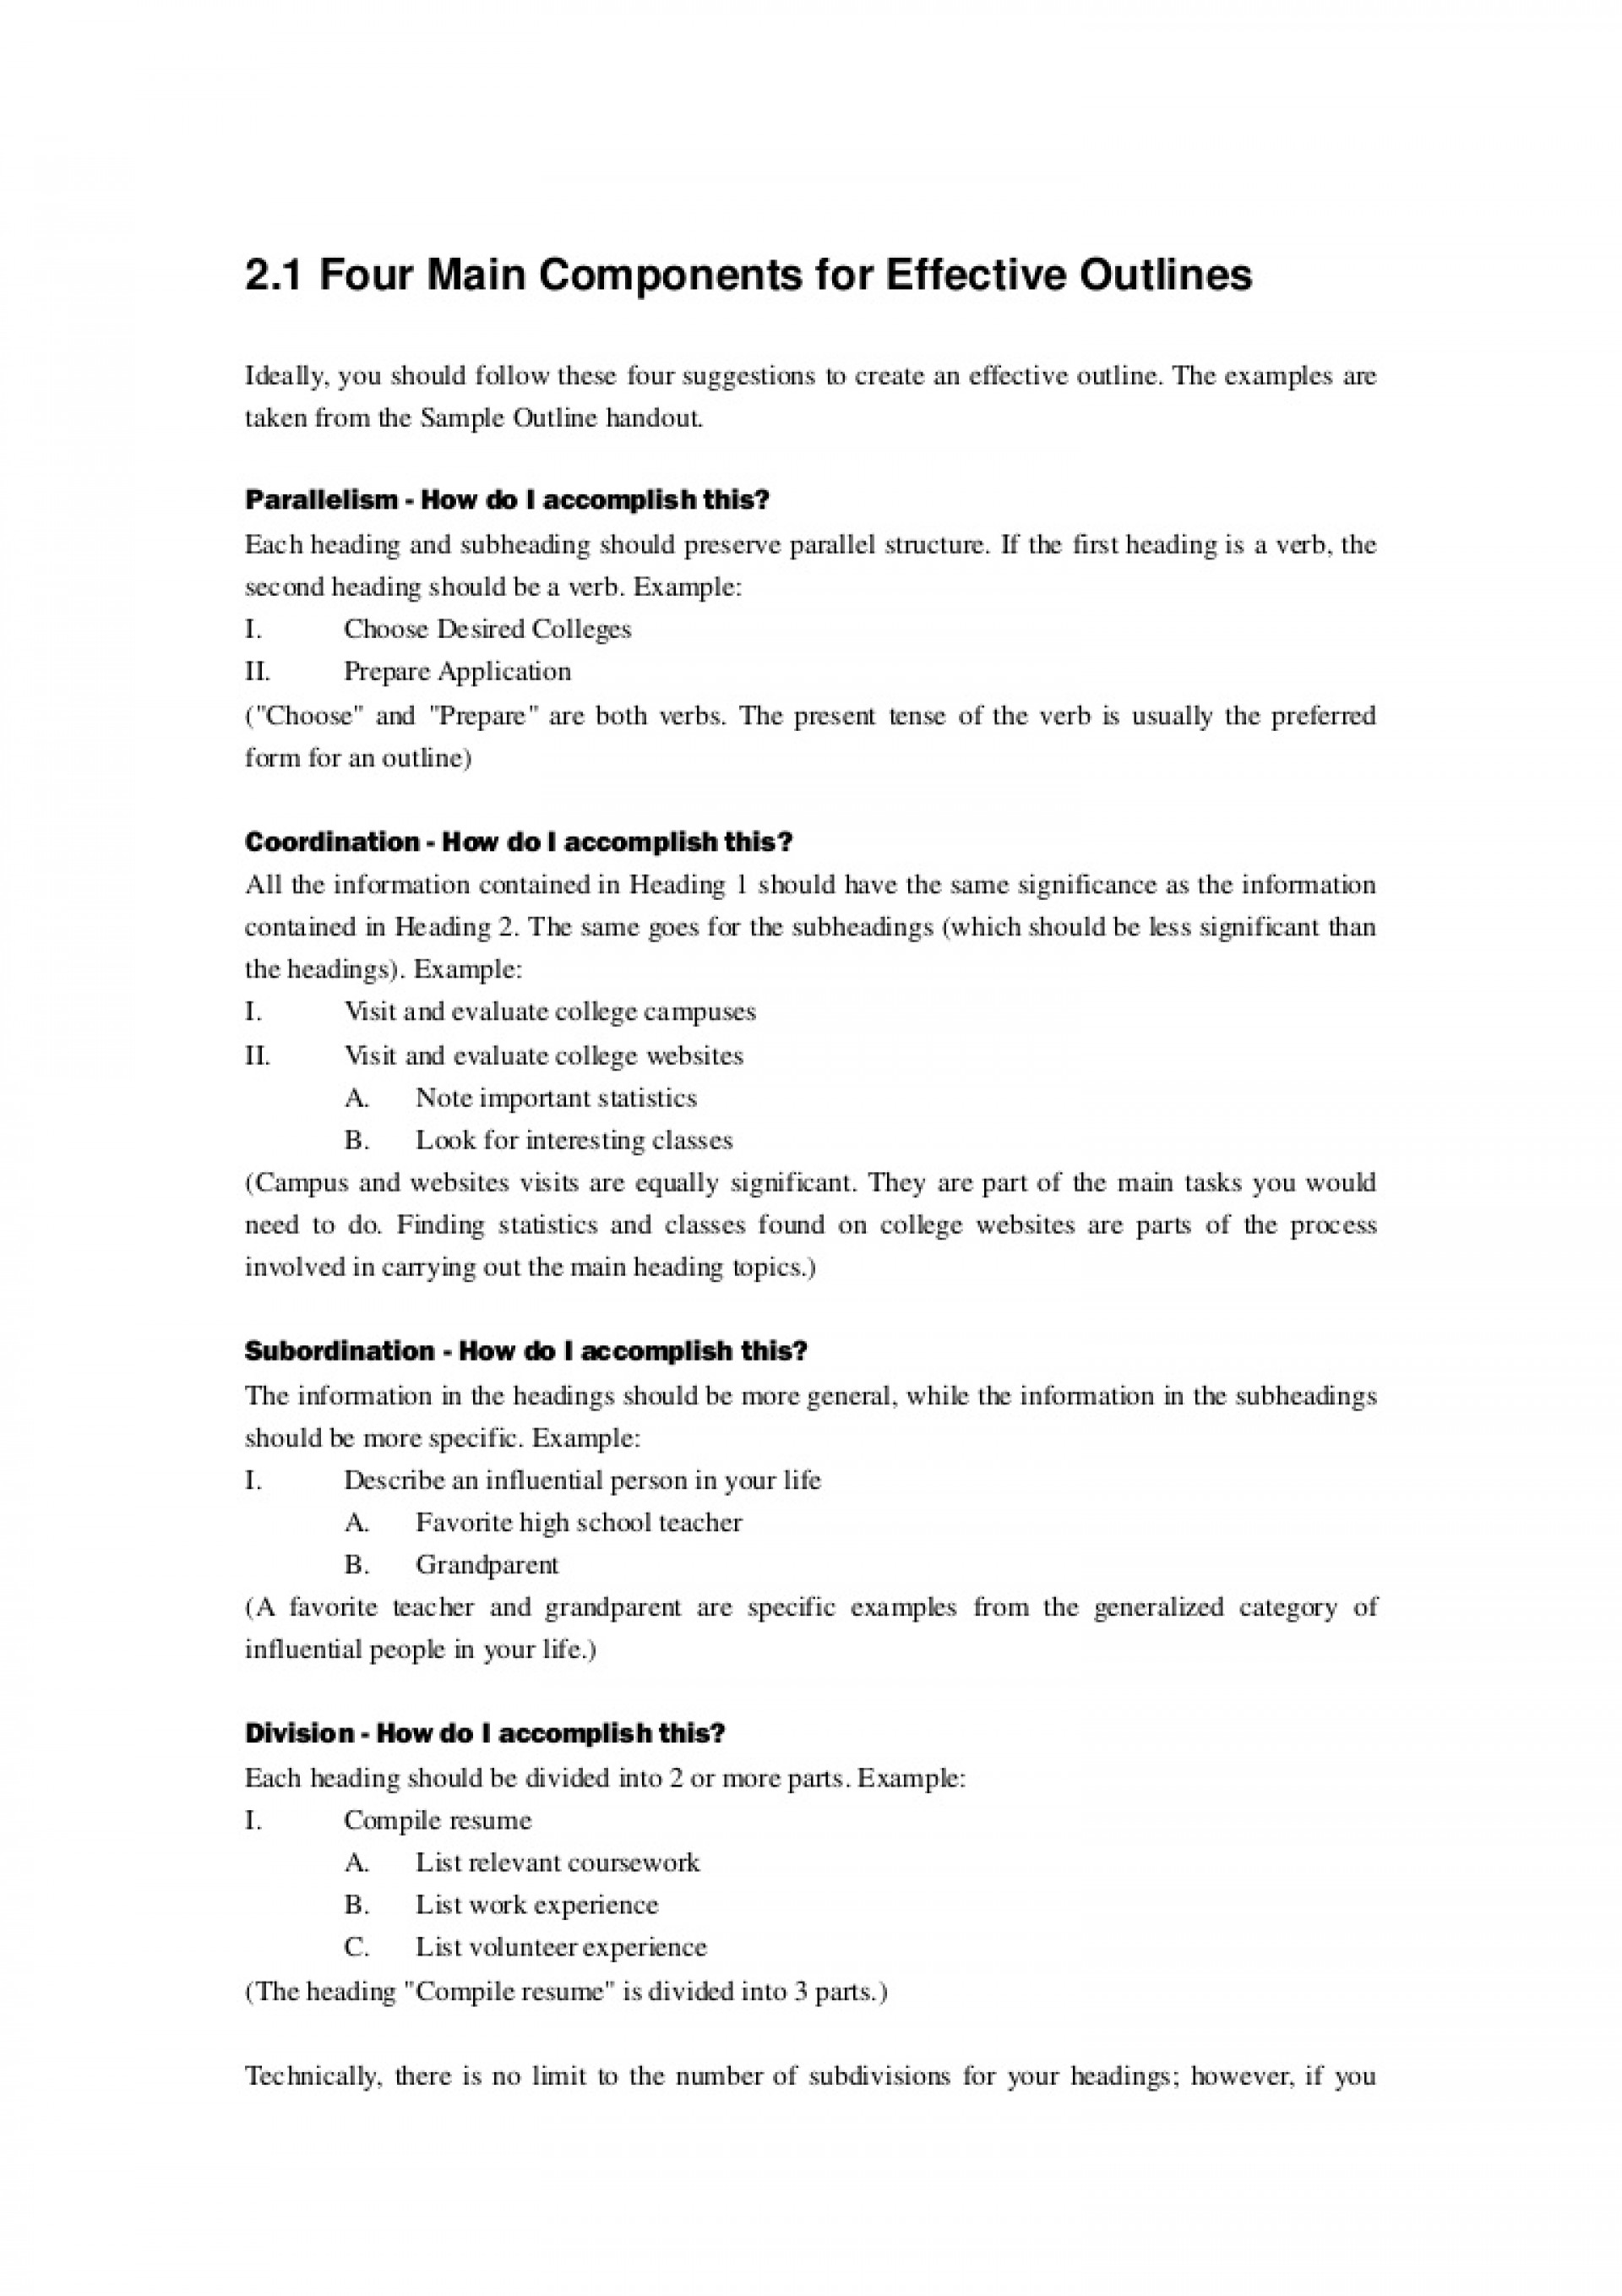 007 Thumbnail Essay Example How To Do An Outline Astounding For A Simple Mla Format Sample 1920